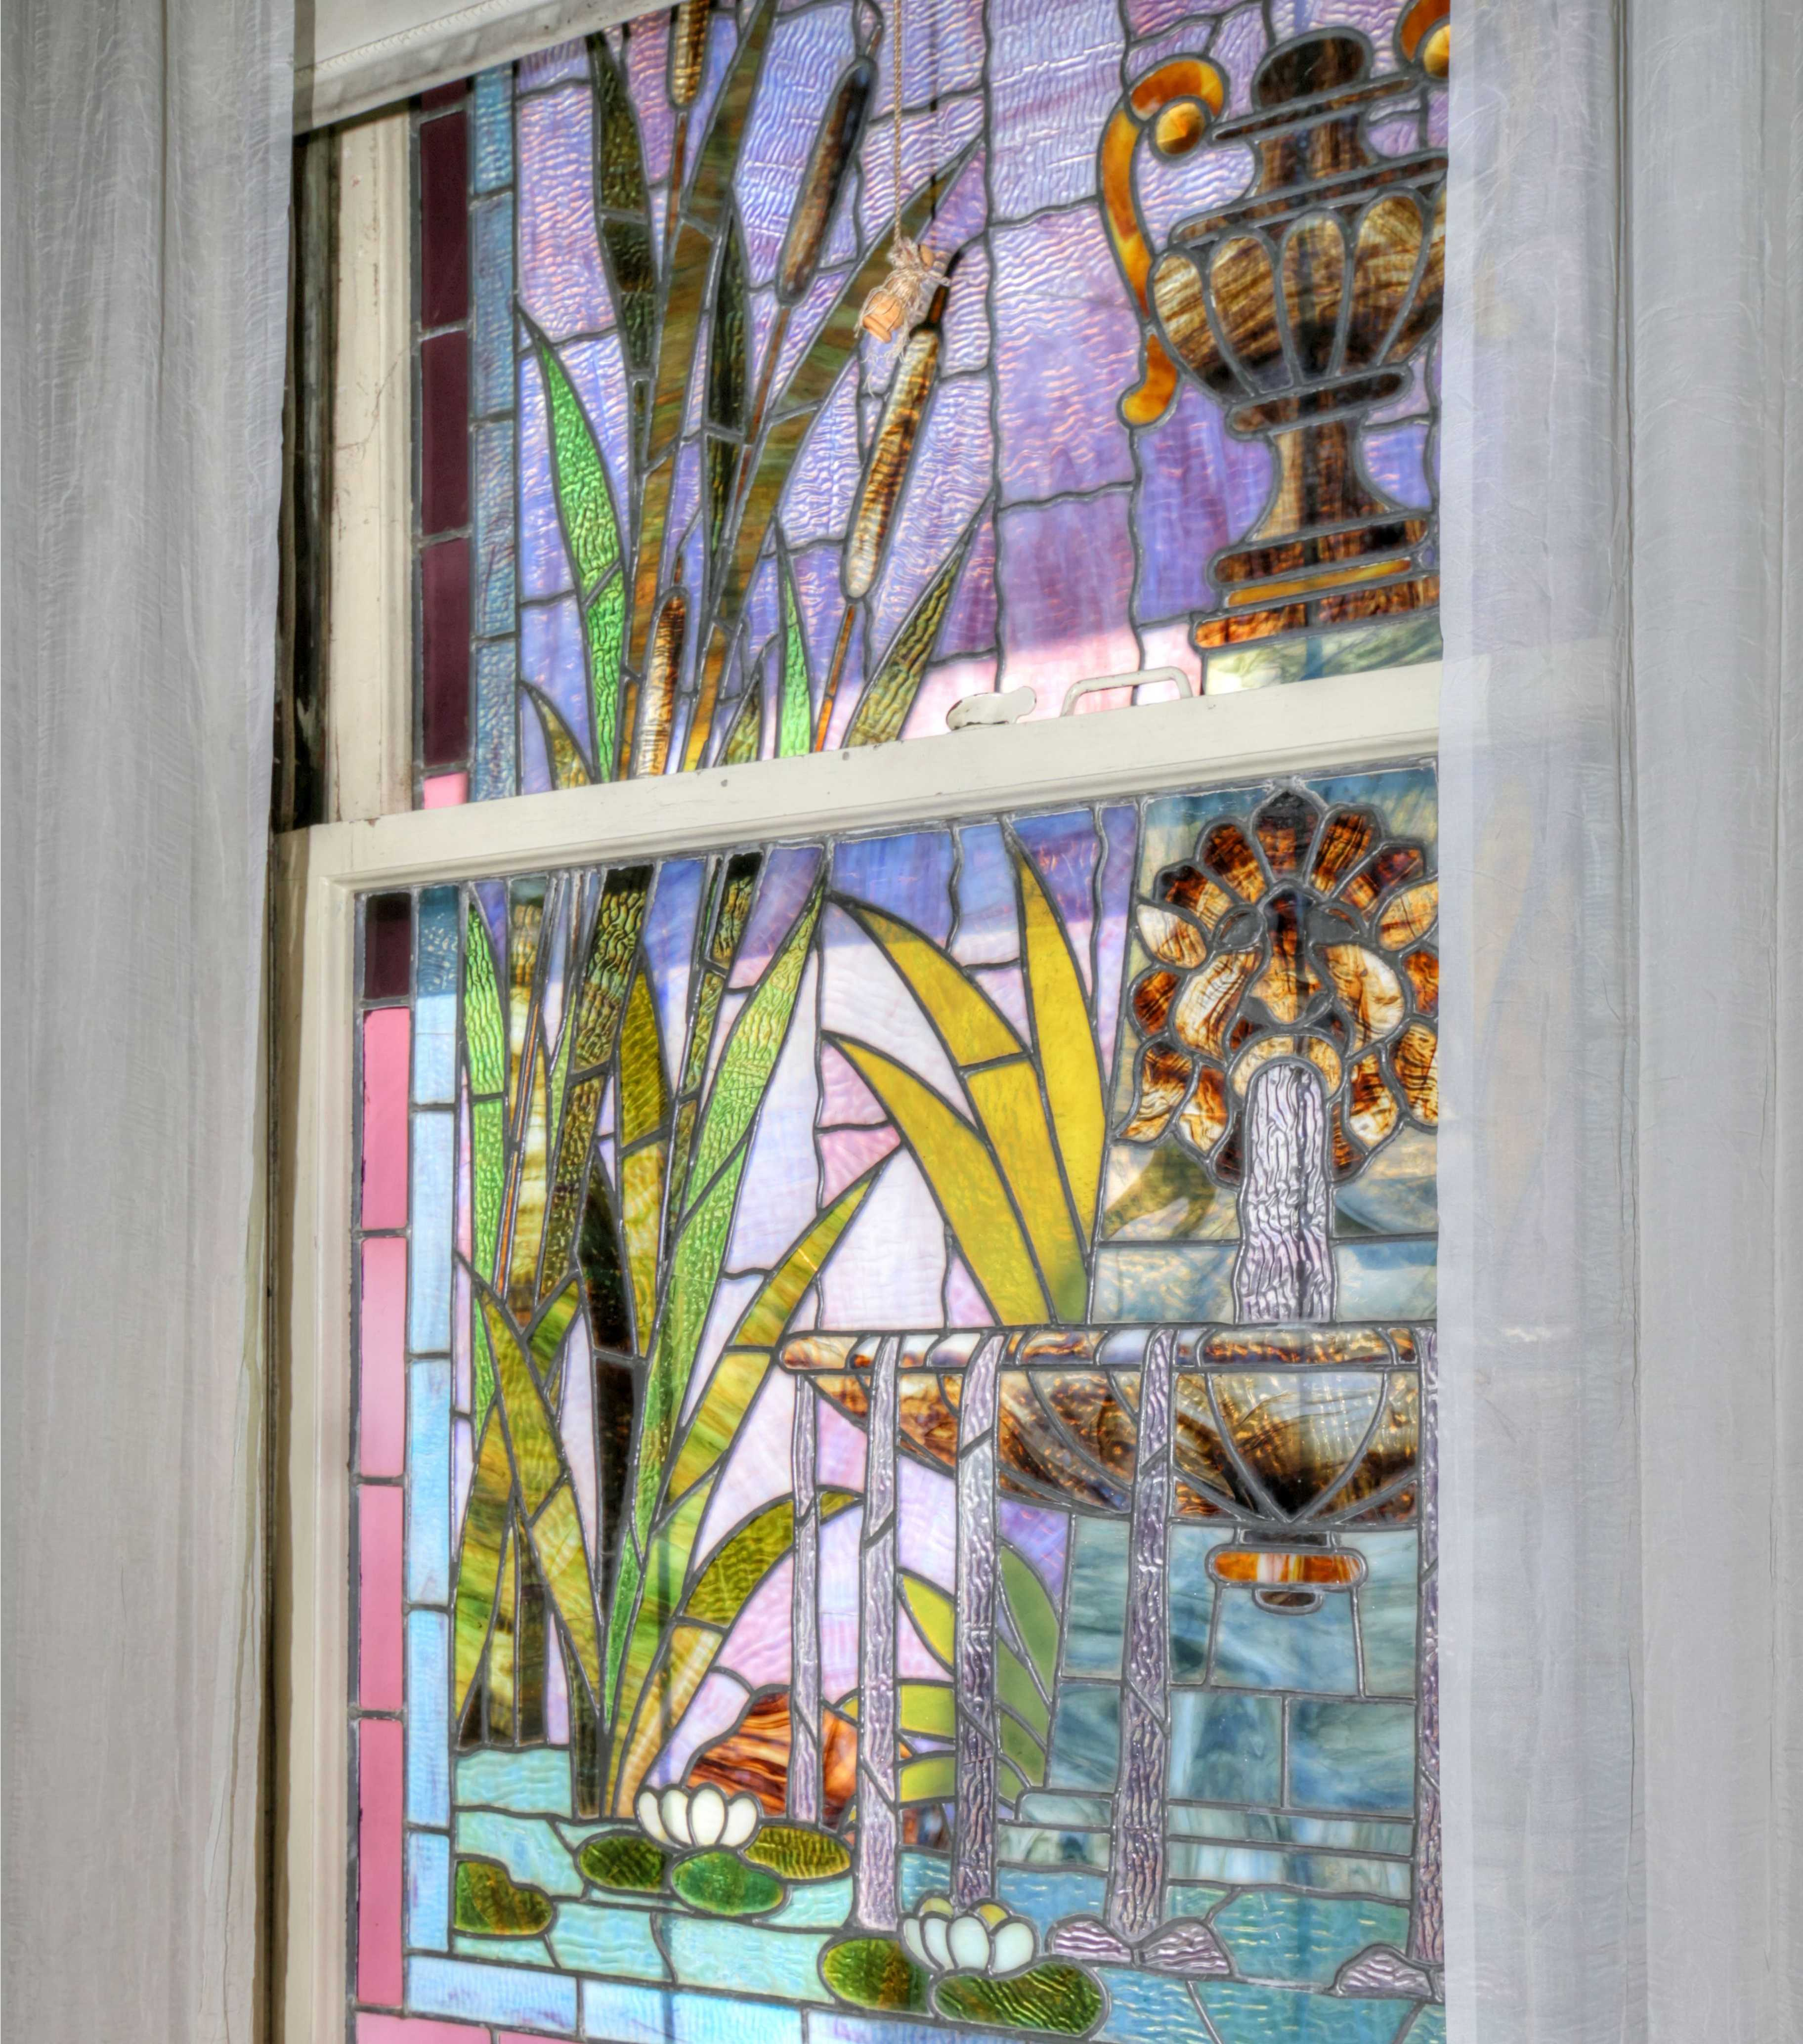 Sacramento Victorian mansion stained glass window